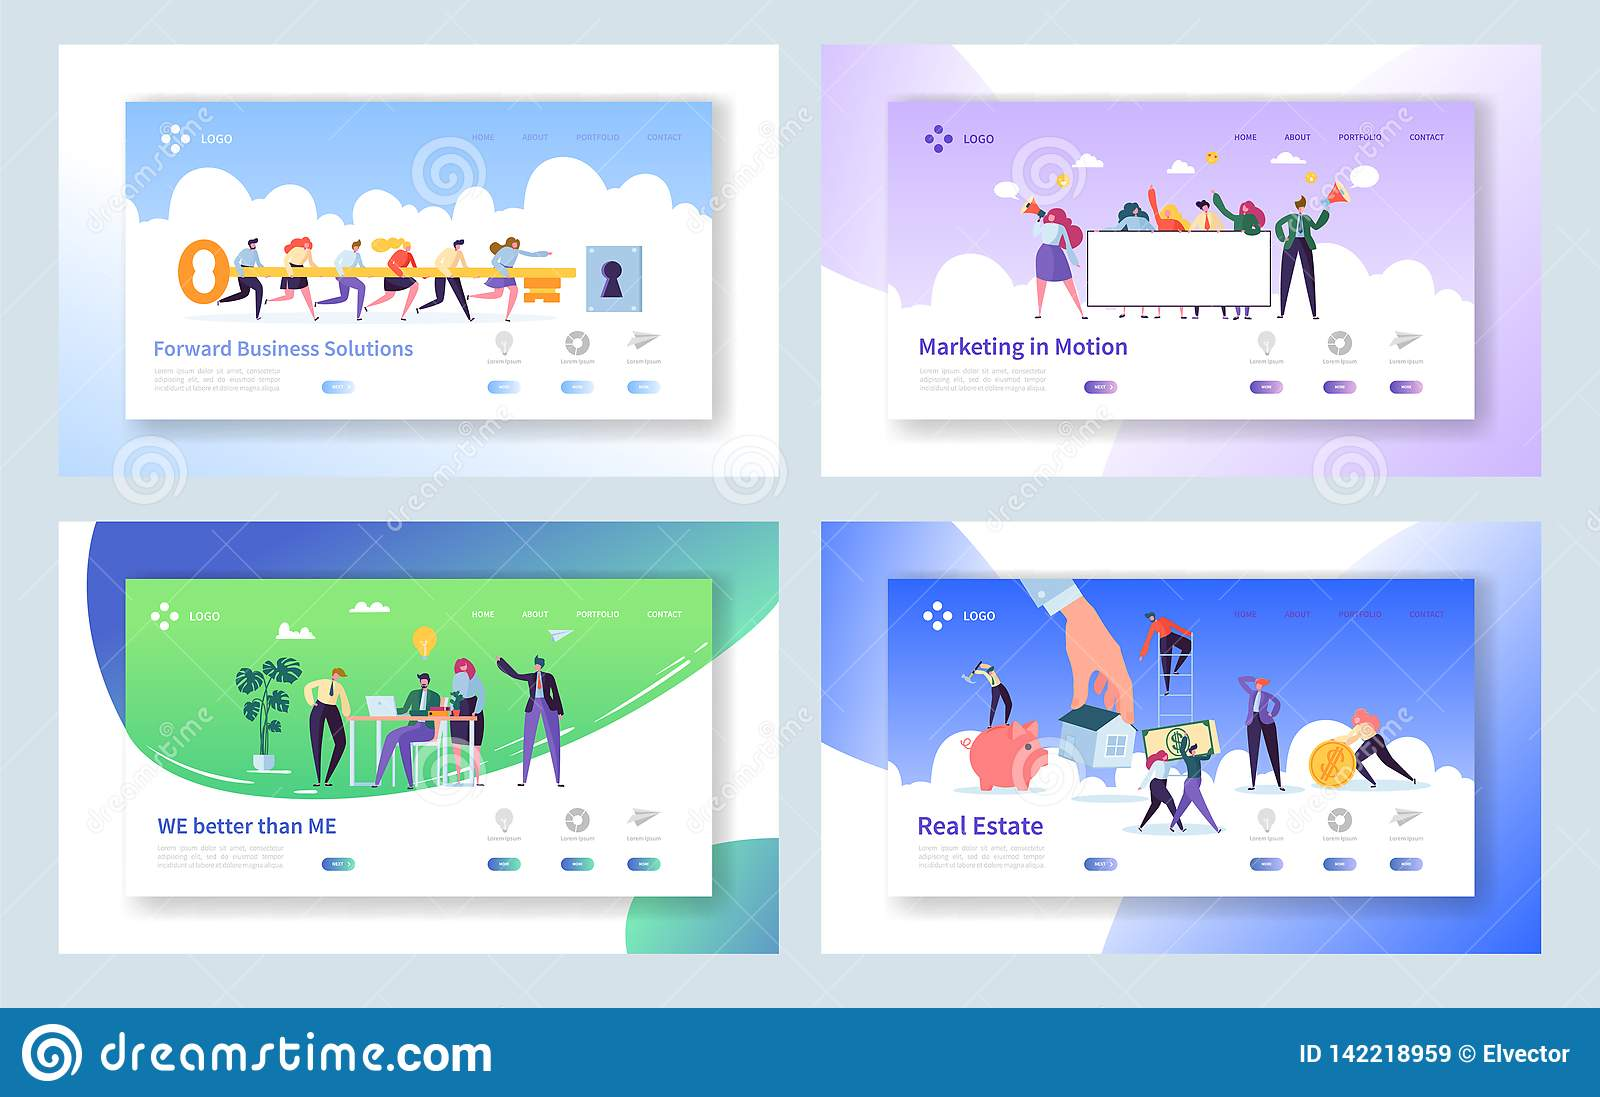 Creative Teamwork Idea Concept Landing Page. Business People Character Making Solution Set. Male and Female with Key Website